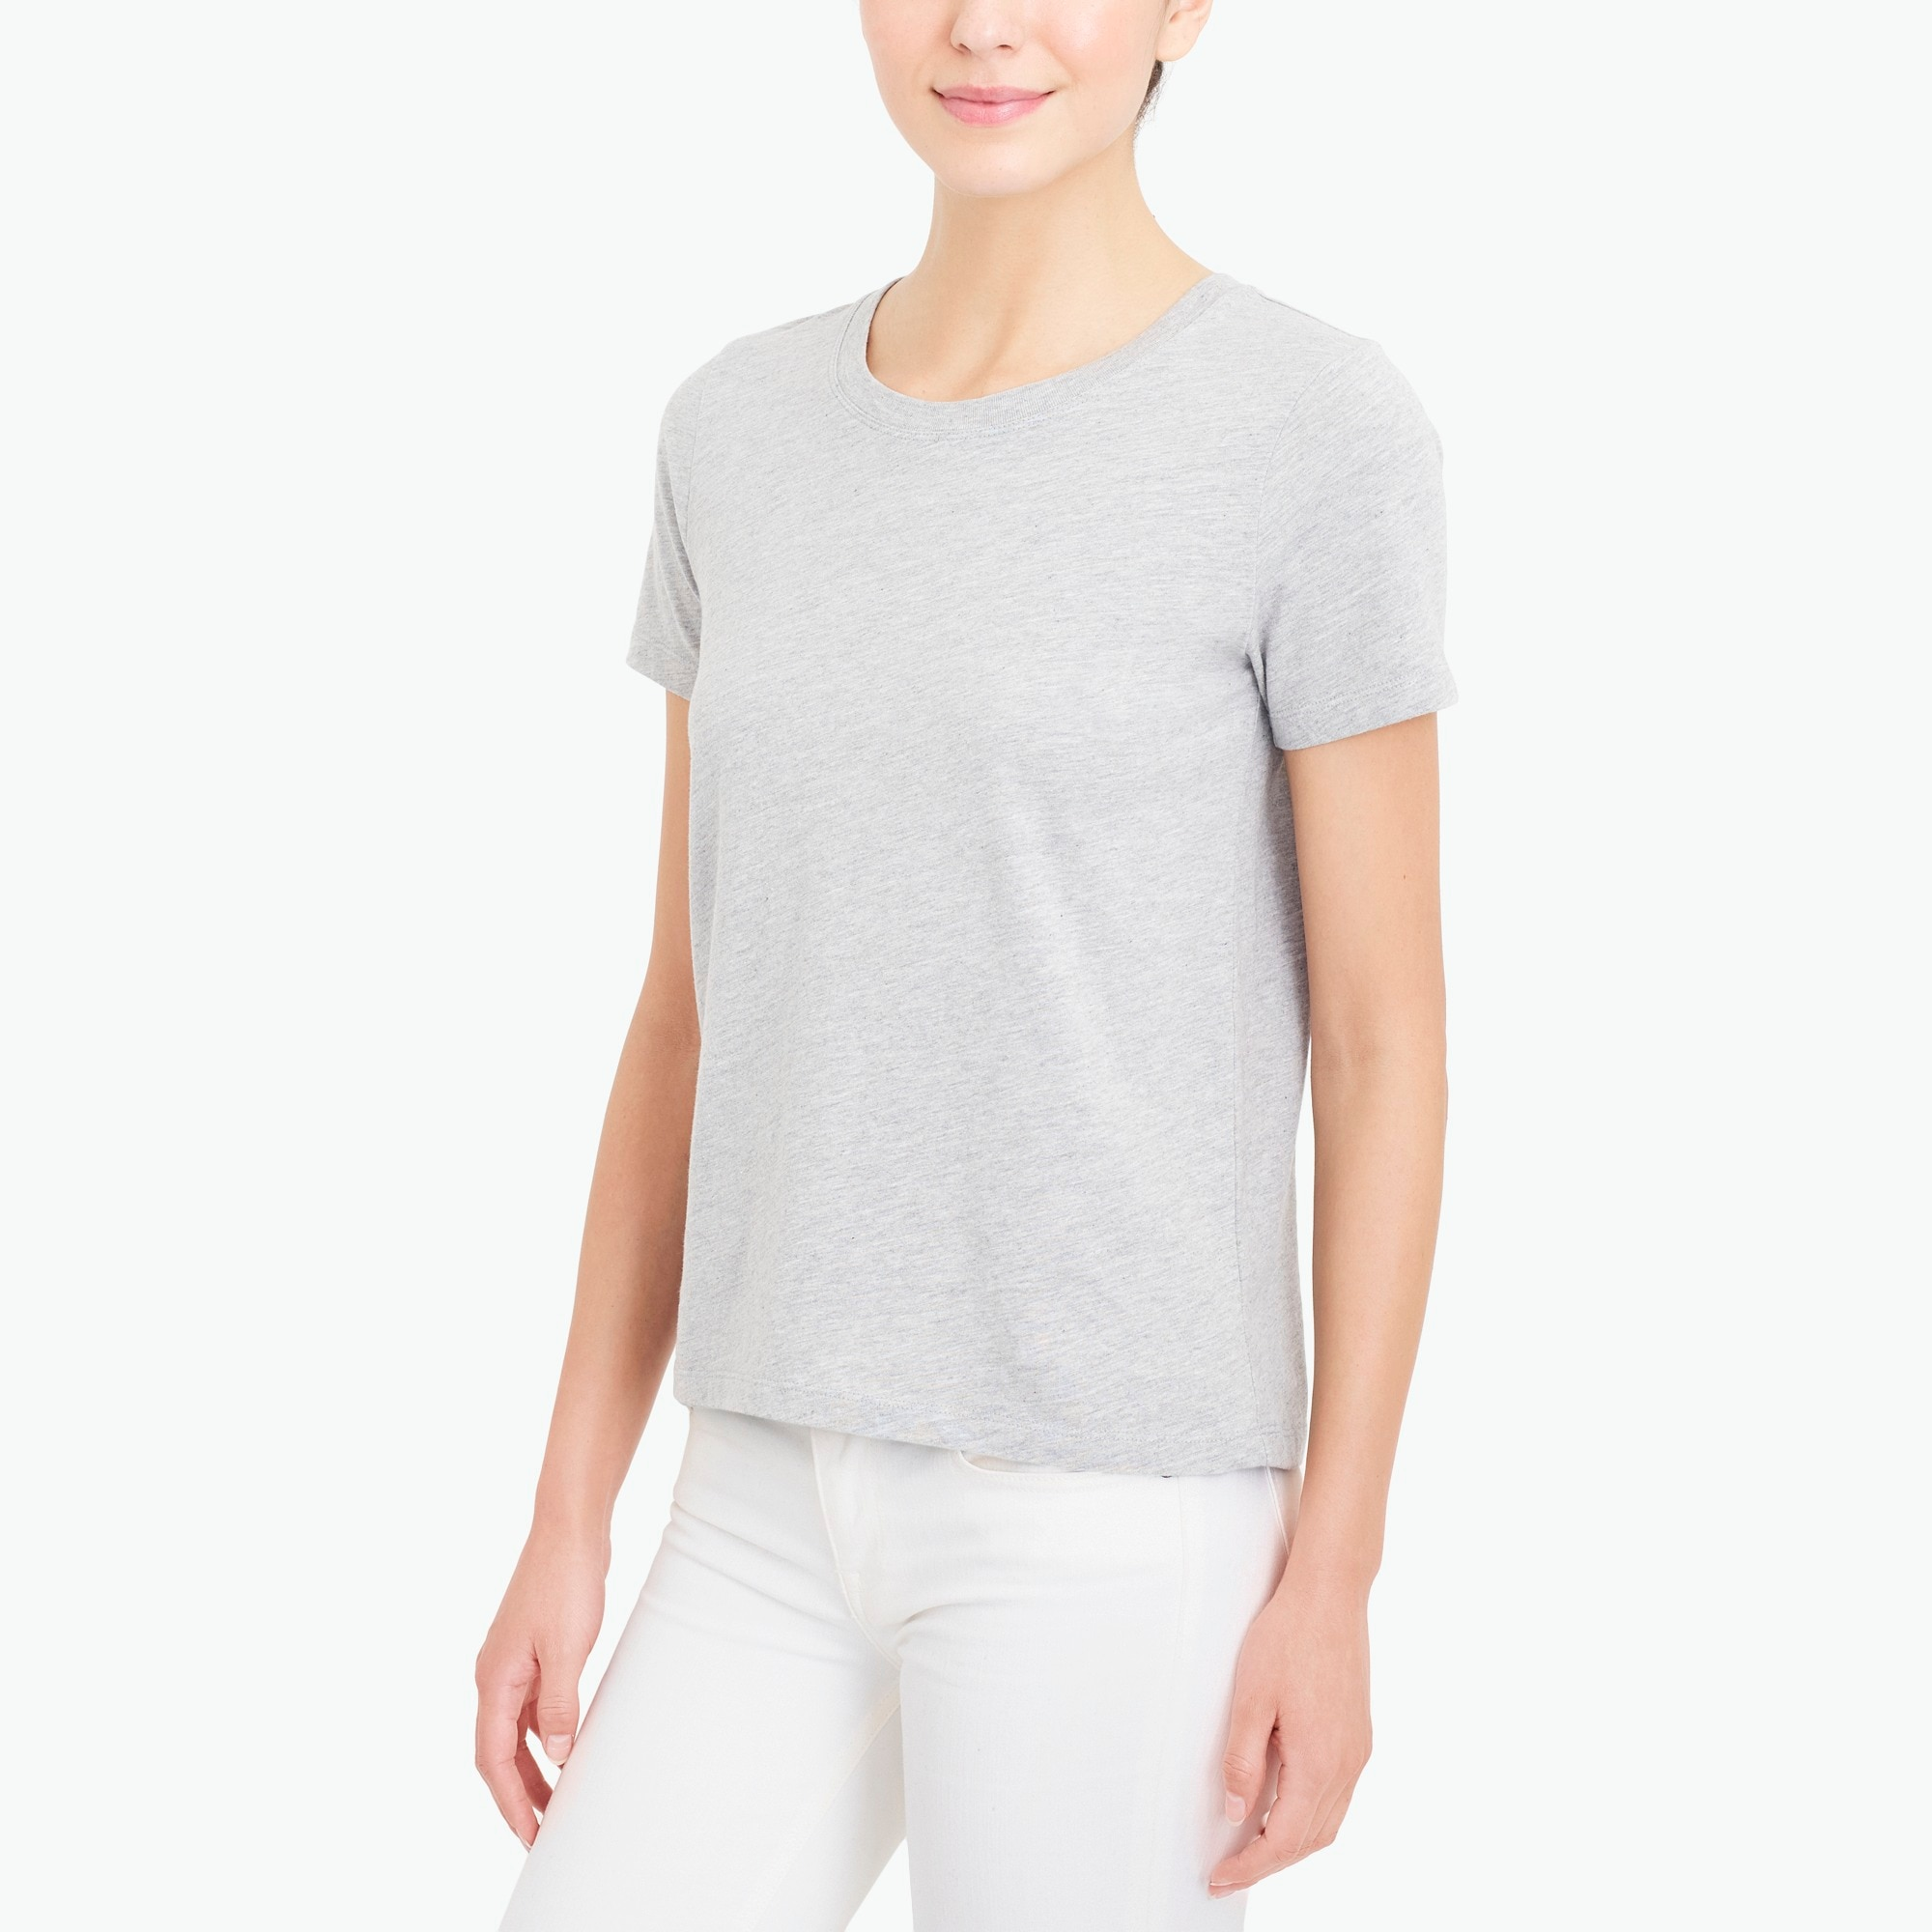 J.Crew Mercantile Broken-In T-shirt factorywomen new arrivals c